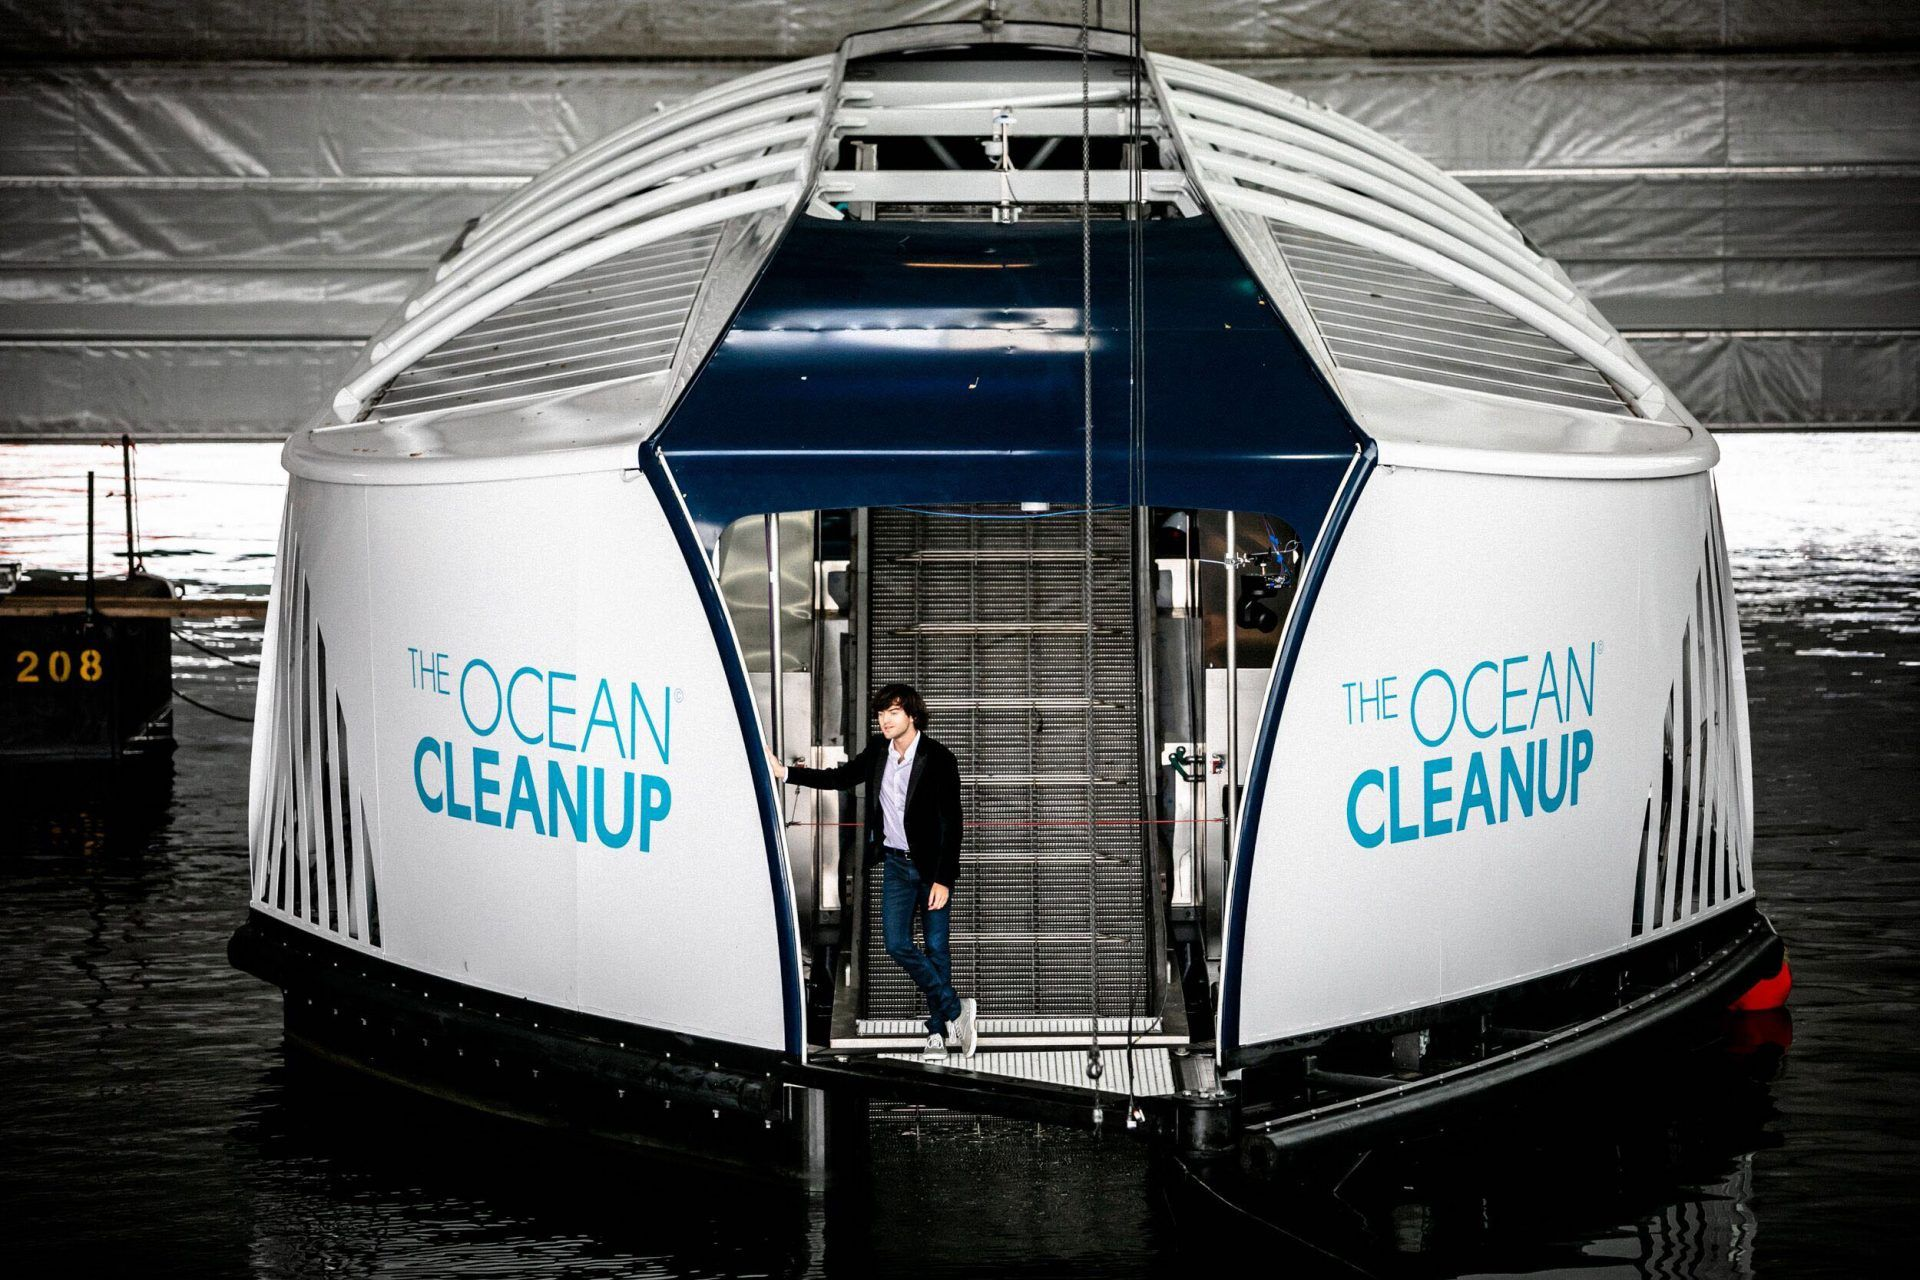 The Ocean Cleanup Reveals The Interceptor It Is The First Scalable Solution To Intercept River Plastic Pollution It Ocean Cleanup Plastic Pollution Pollution